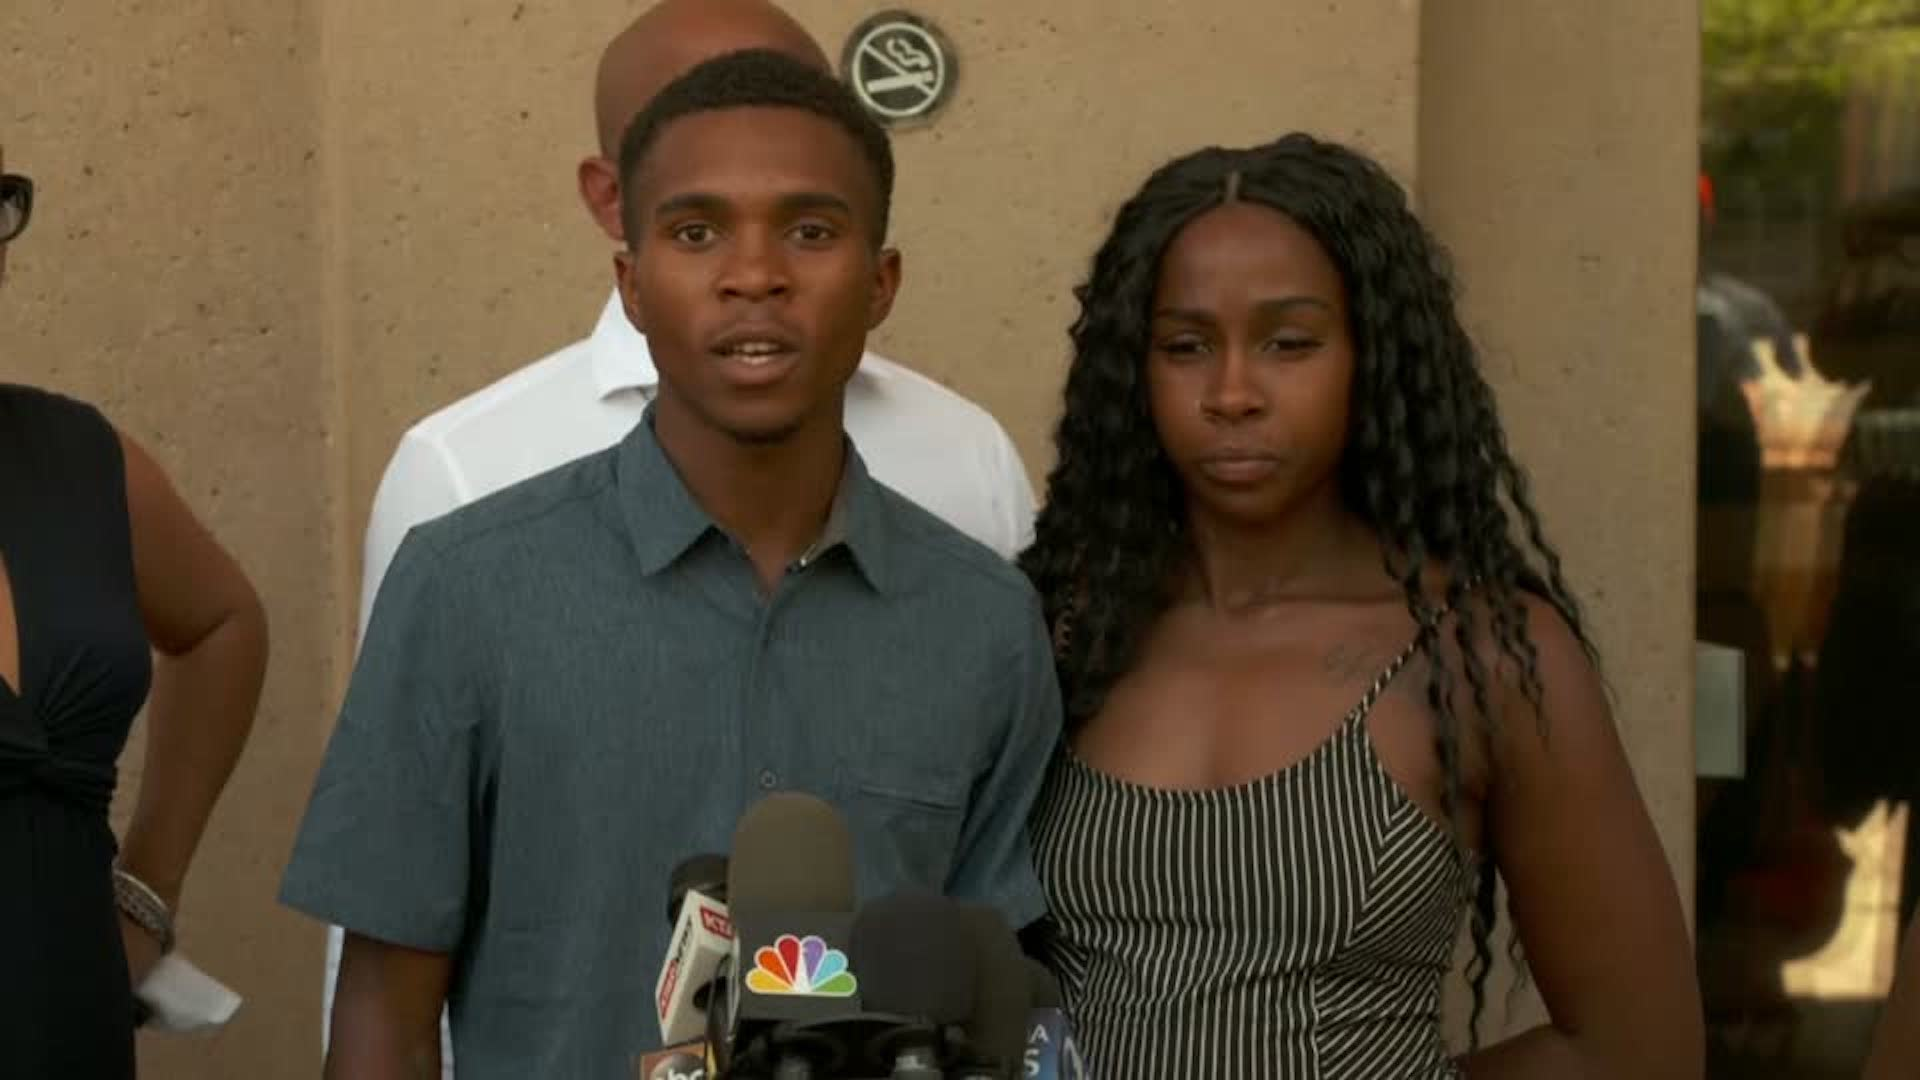 Parents want Phoenix police fired